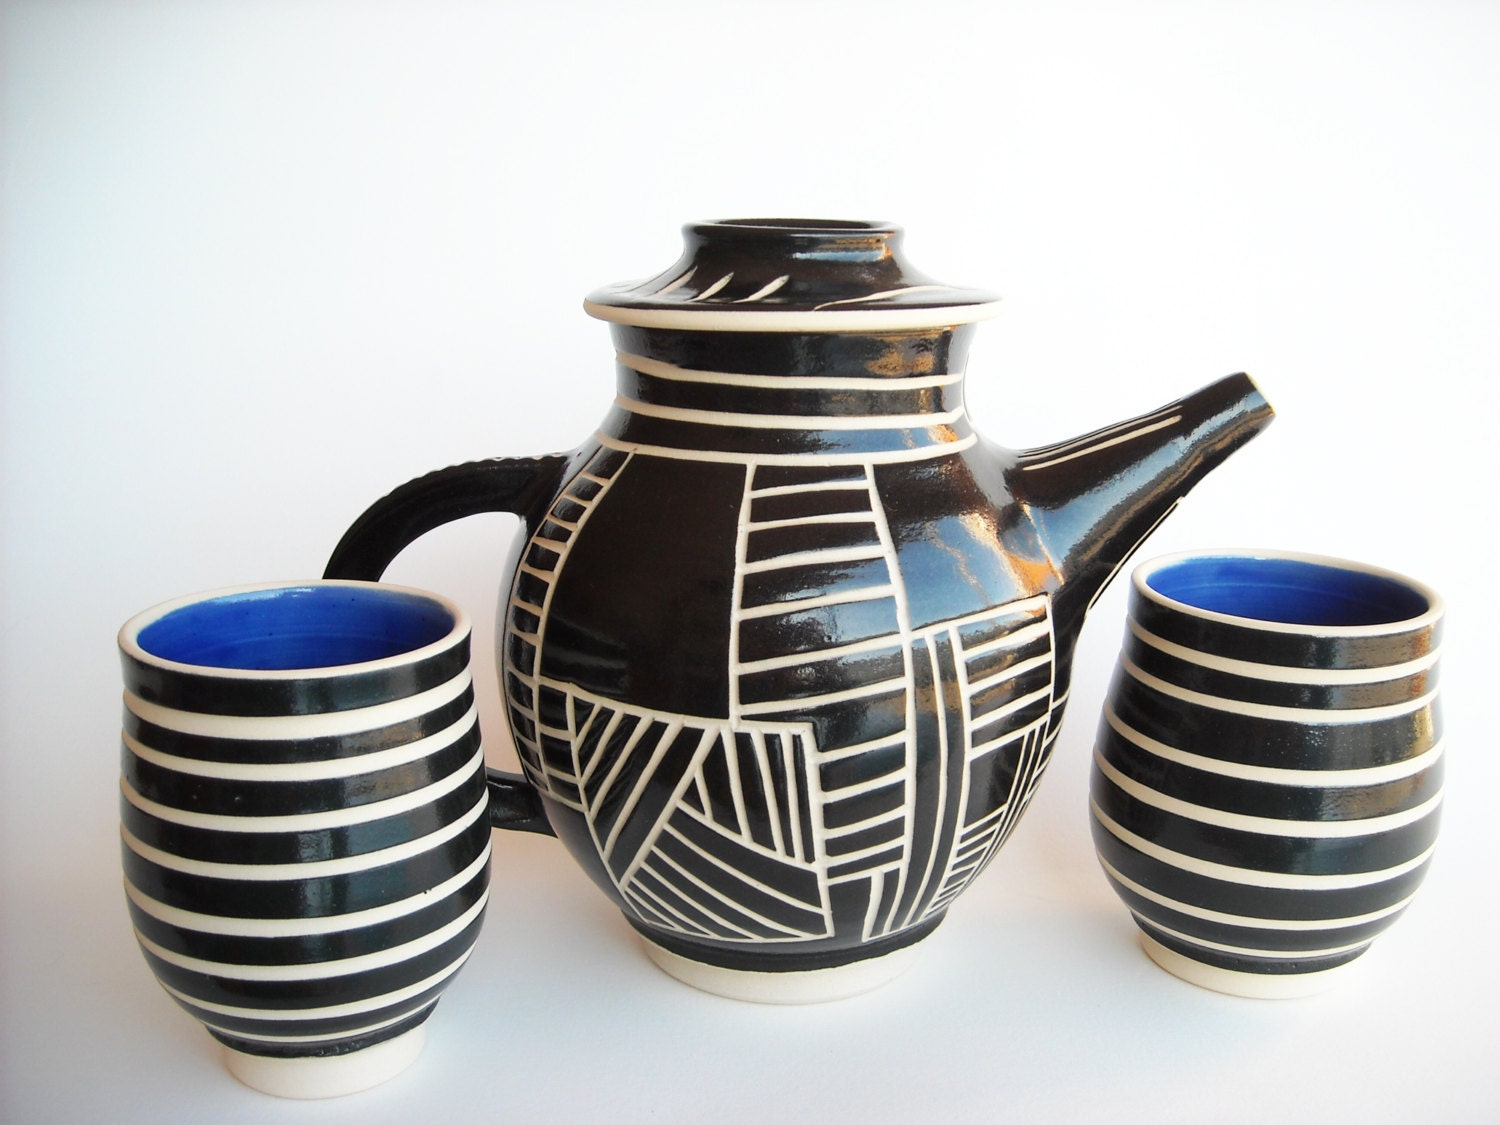 Ceramic Teapot Set with Black and White Ladder design